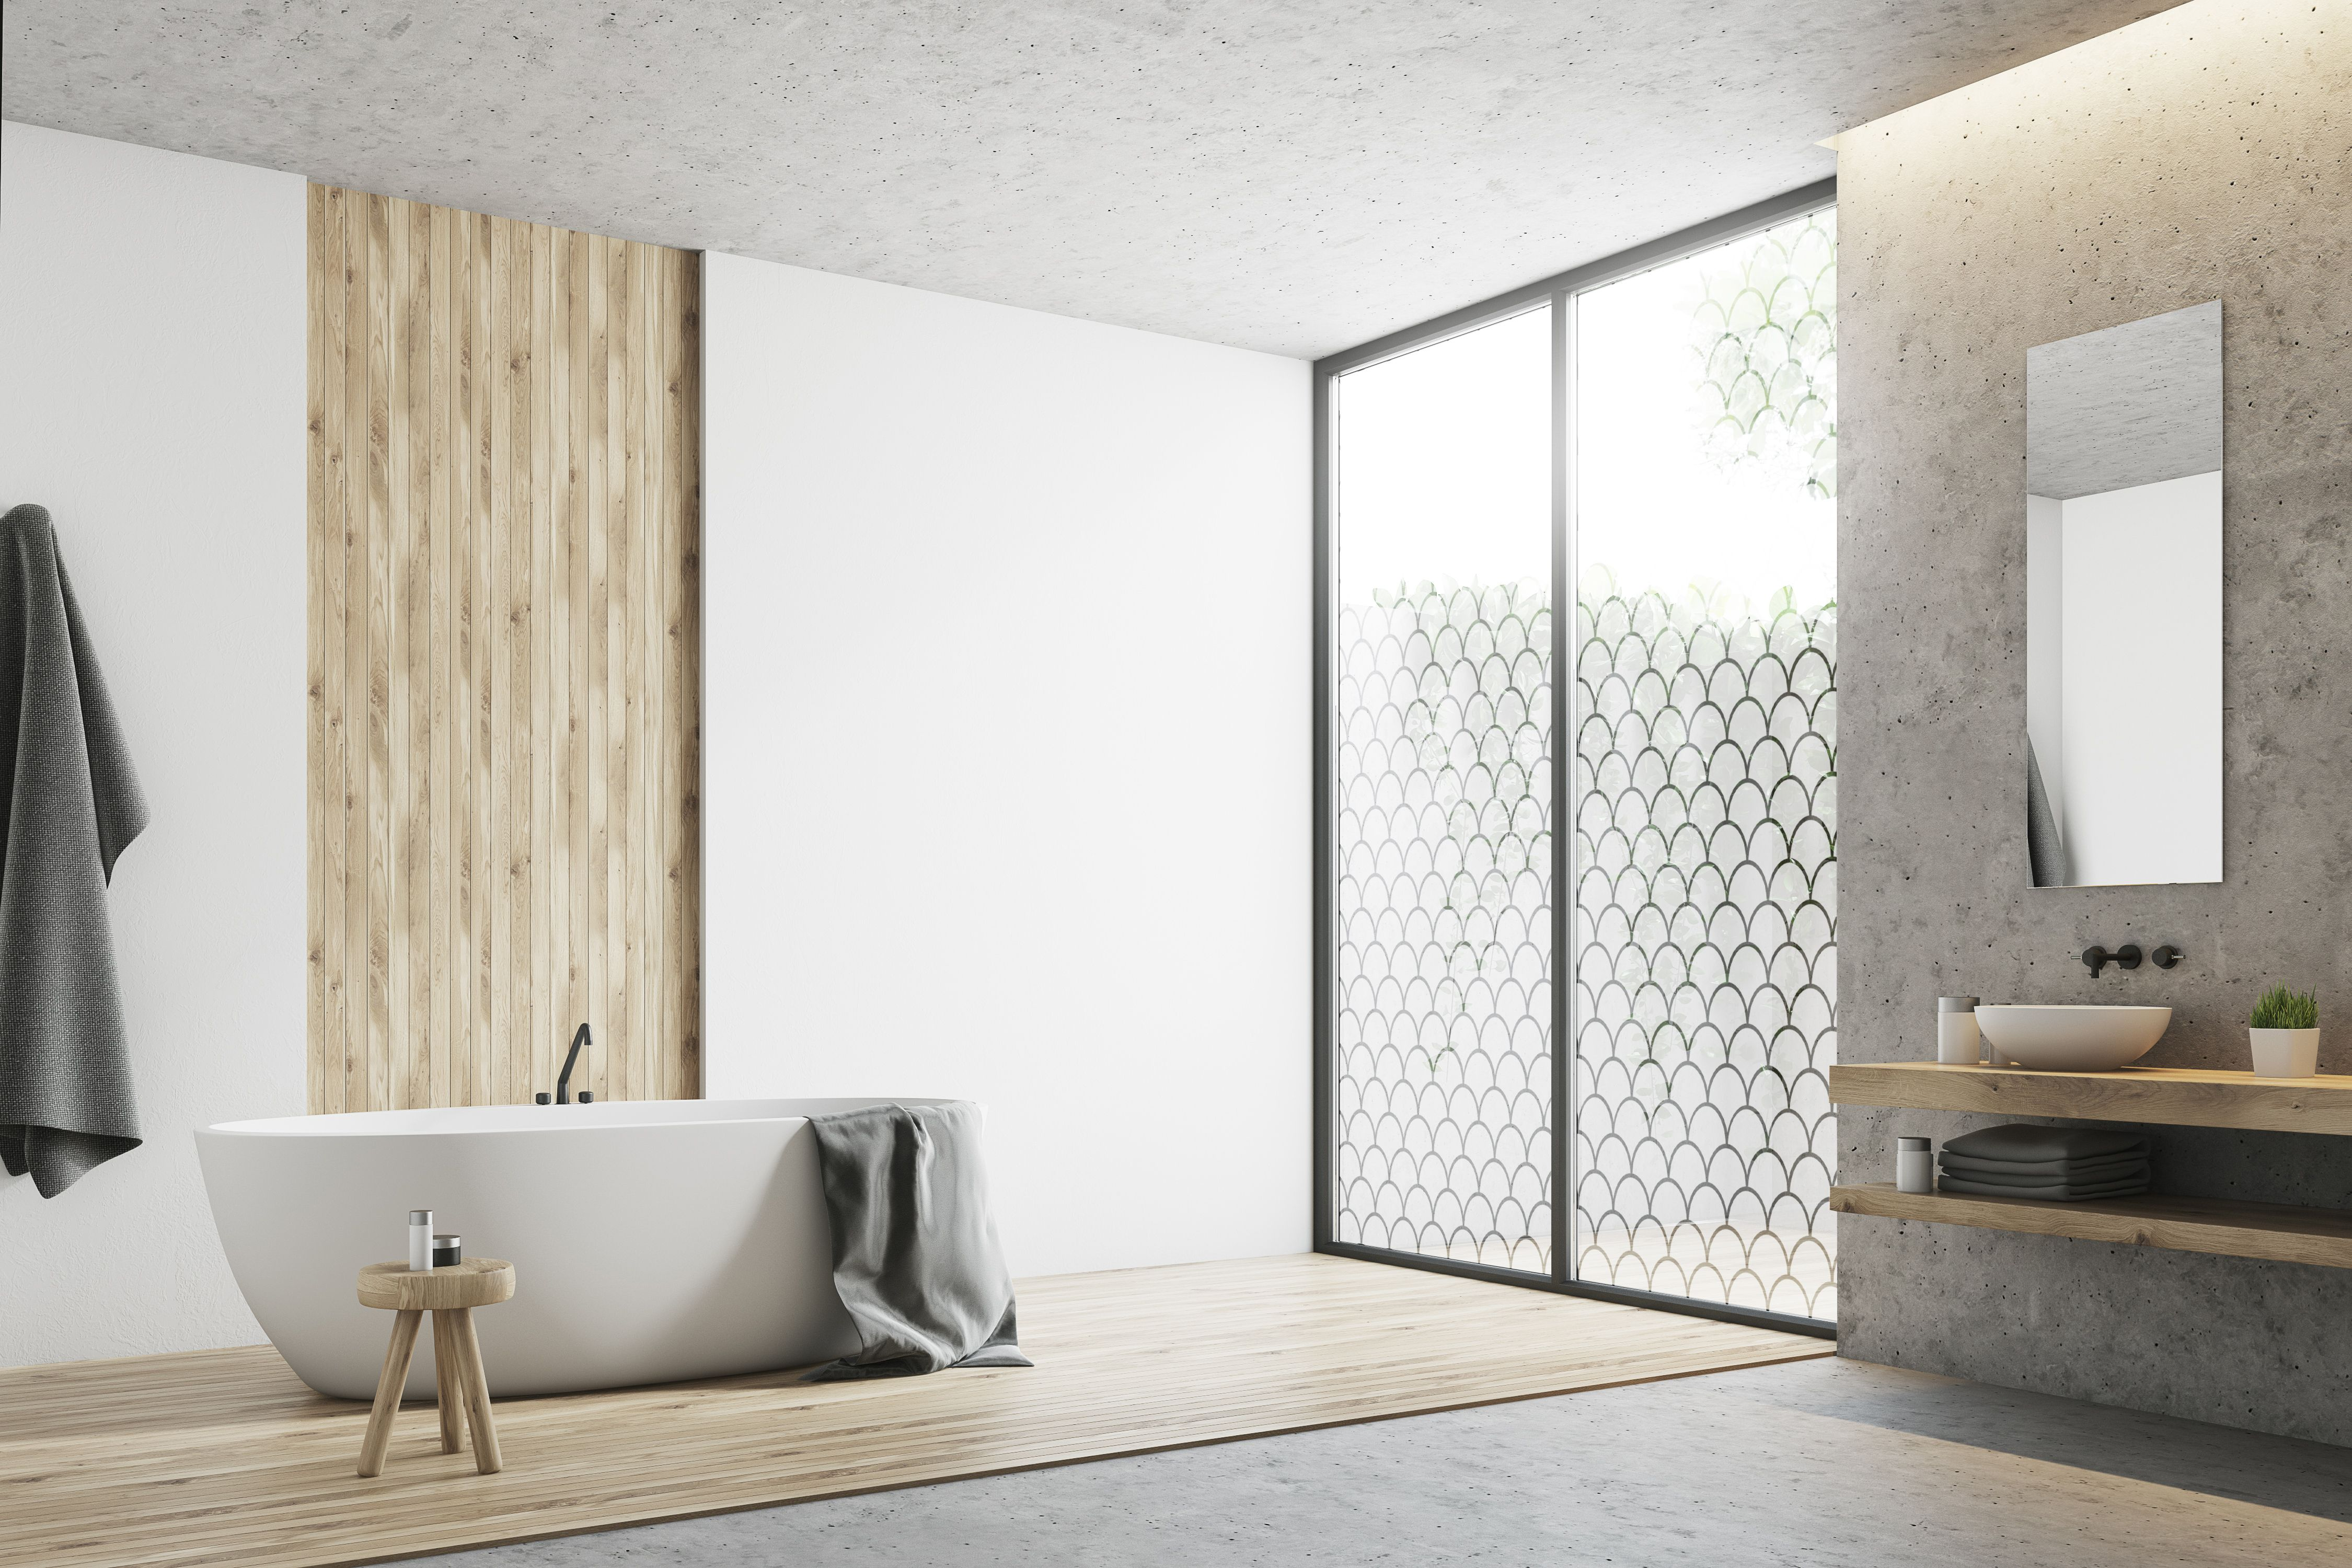 Modern Bathroom With Custom Design Frosted Window For Decoration